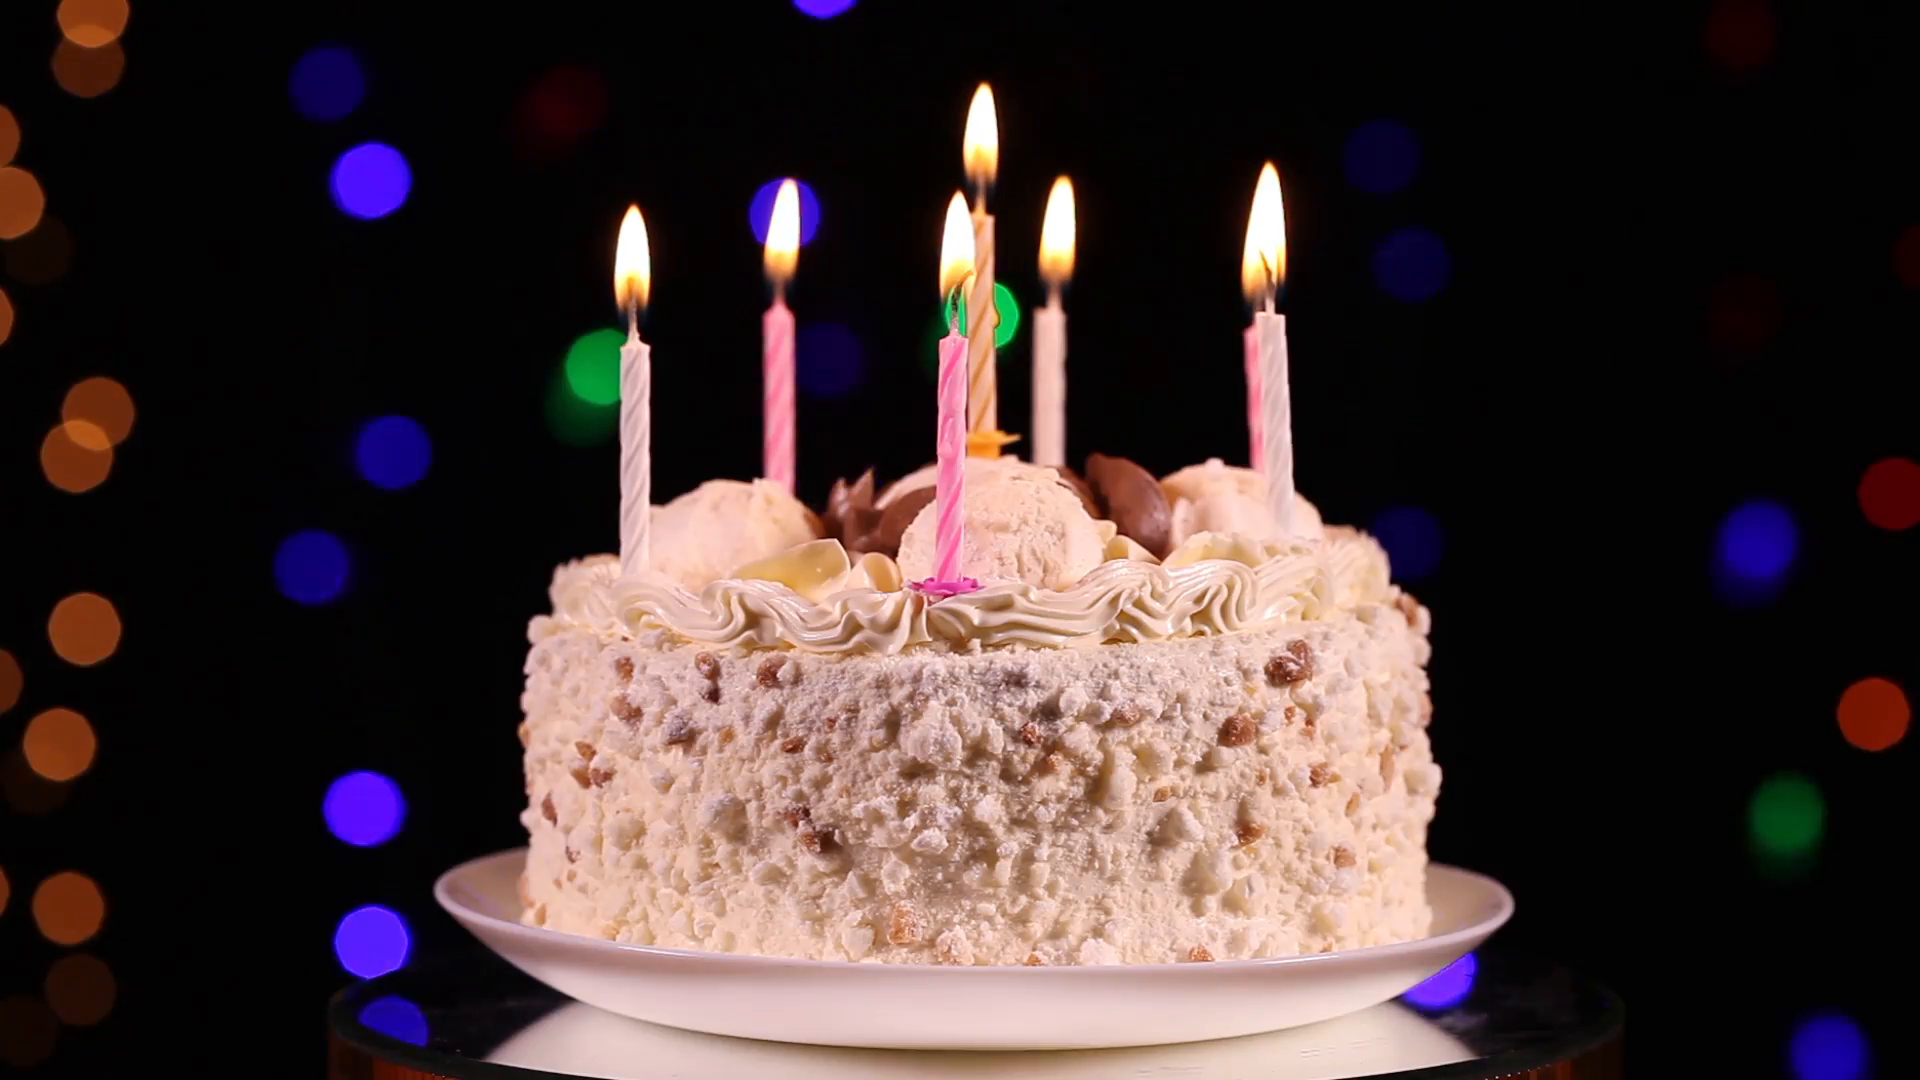 Happy Birthday Cake Pictures Happy Birthday Cake With Burning Candles In Front Of Black